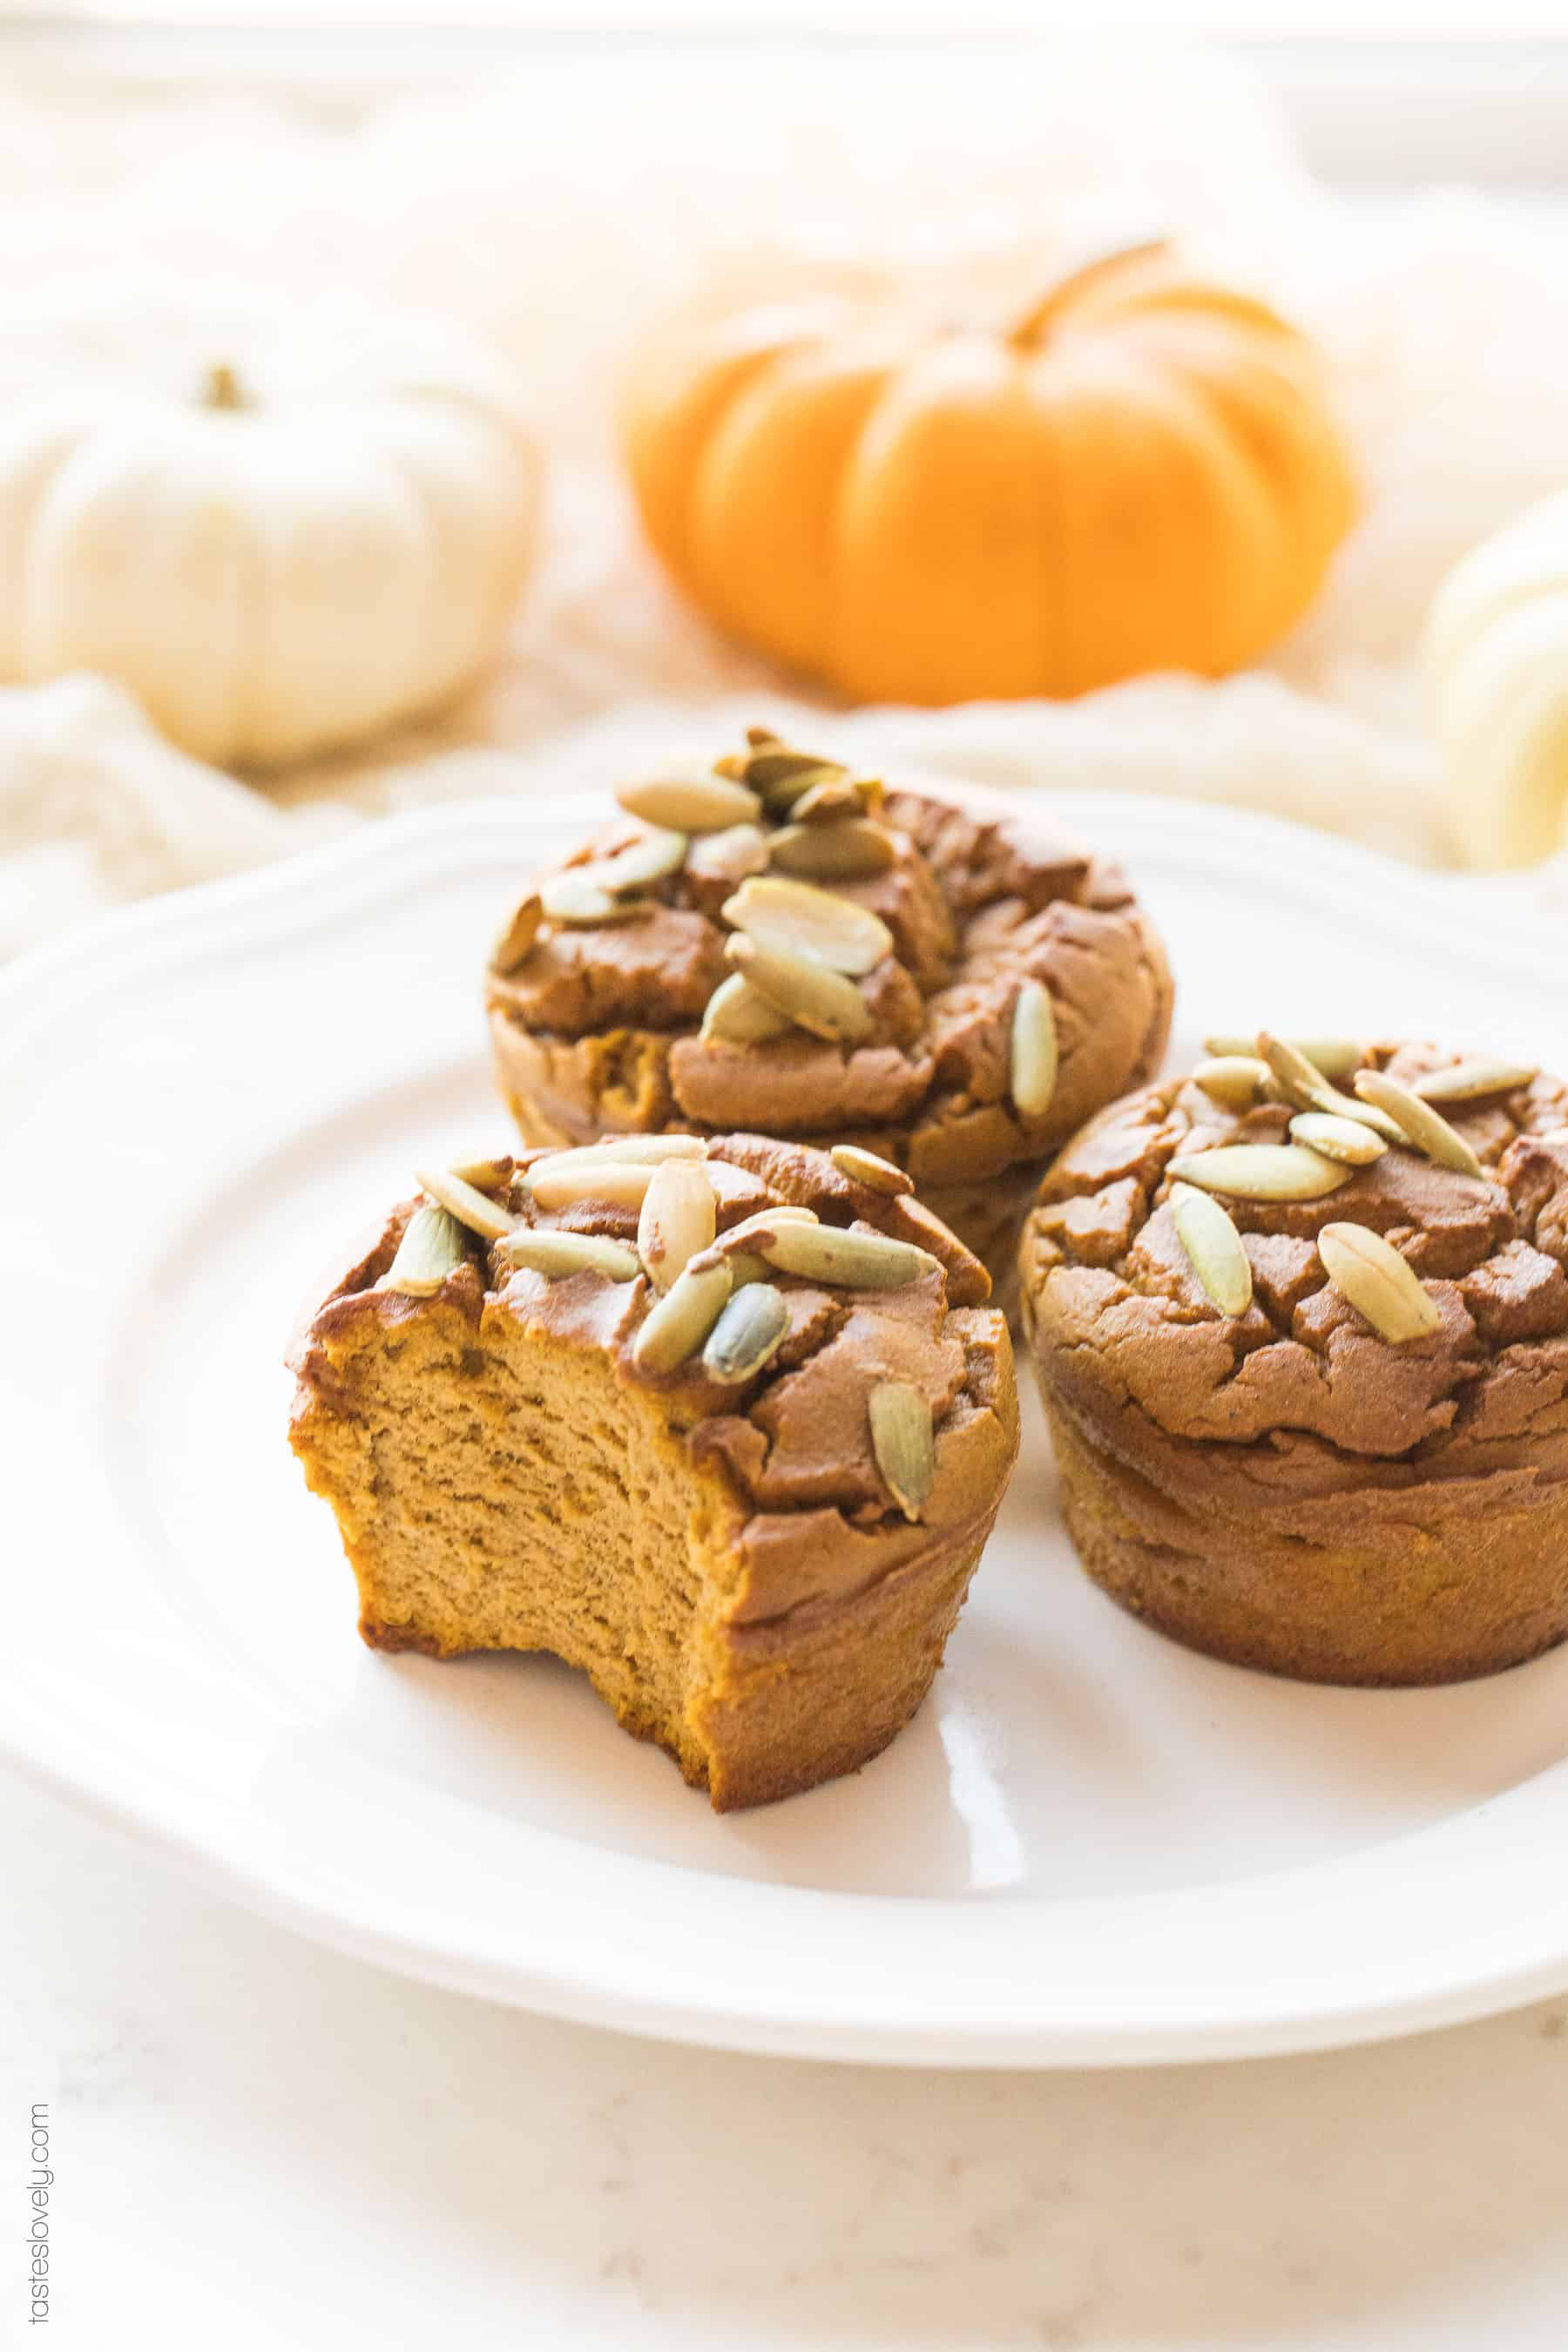 a plate of paleo pumpkin muffins, 1 has a bite taken out of it